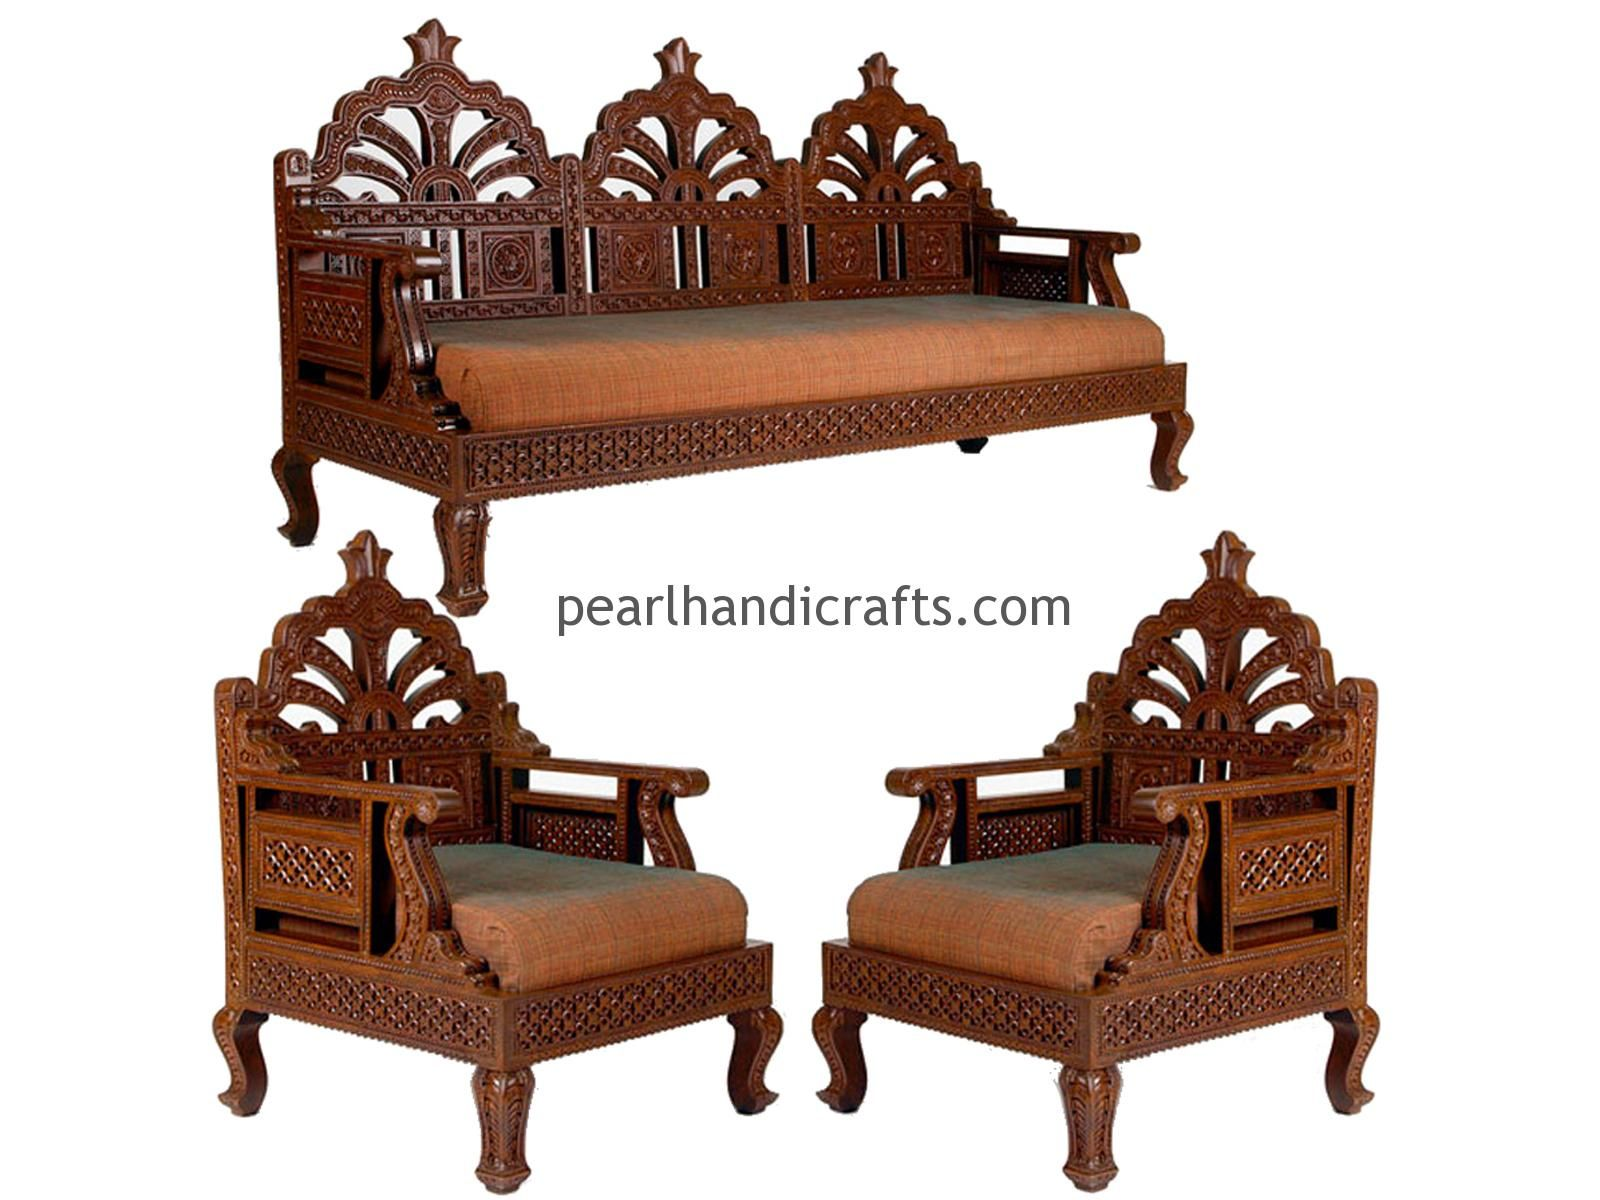 Foam Cushions For Wooden Sofa India In 2020 Wooden Sofa Wood Sofa Teak Furniture Set